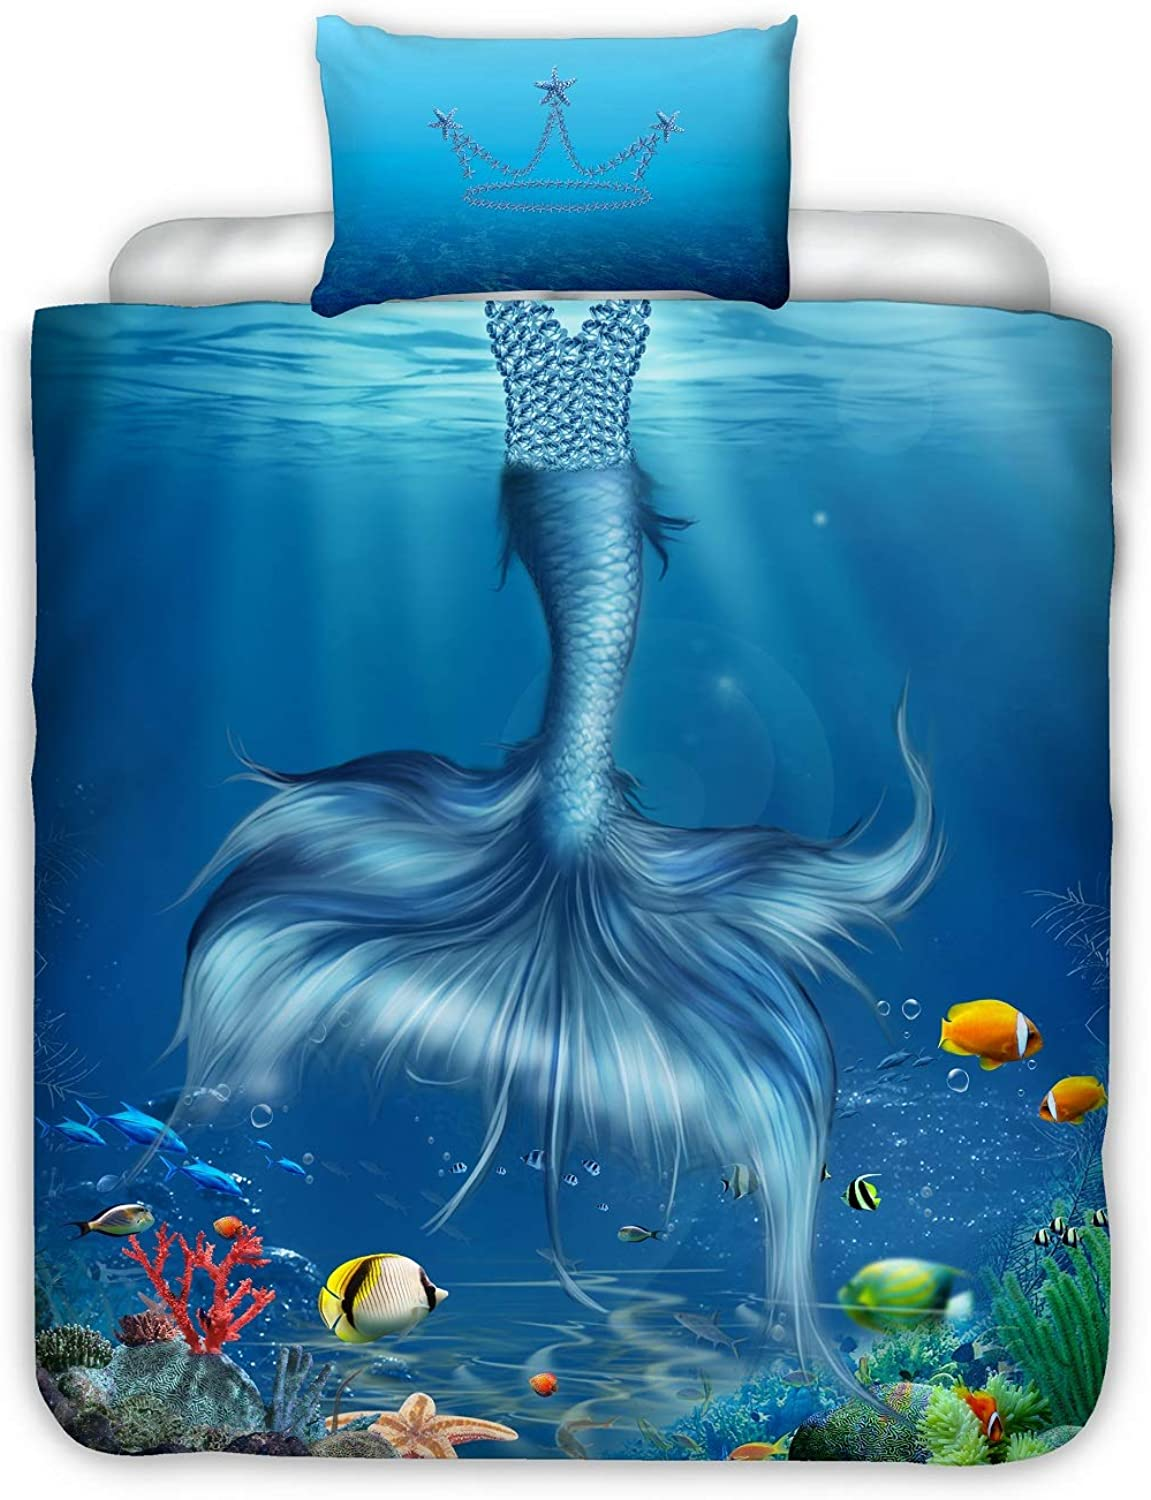 YOUSA Mermaid Duvet Cover and Pillow Case Set for Girls Kids Mermaid Bedding Sets (Twin,Mermaid)